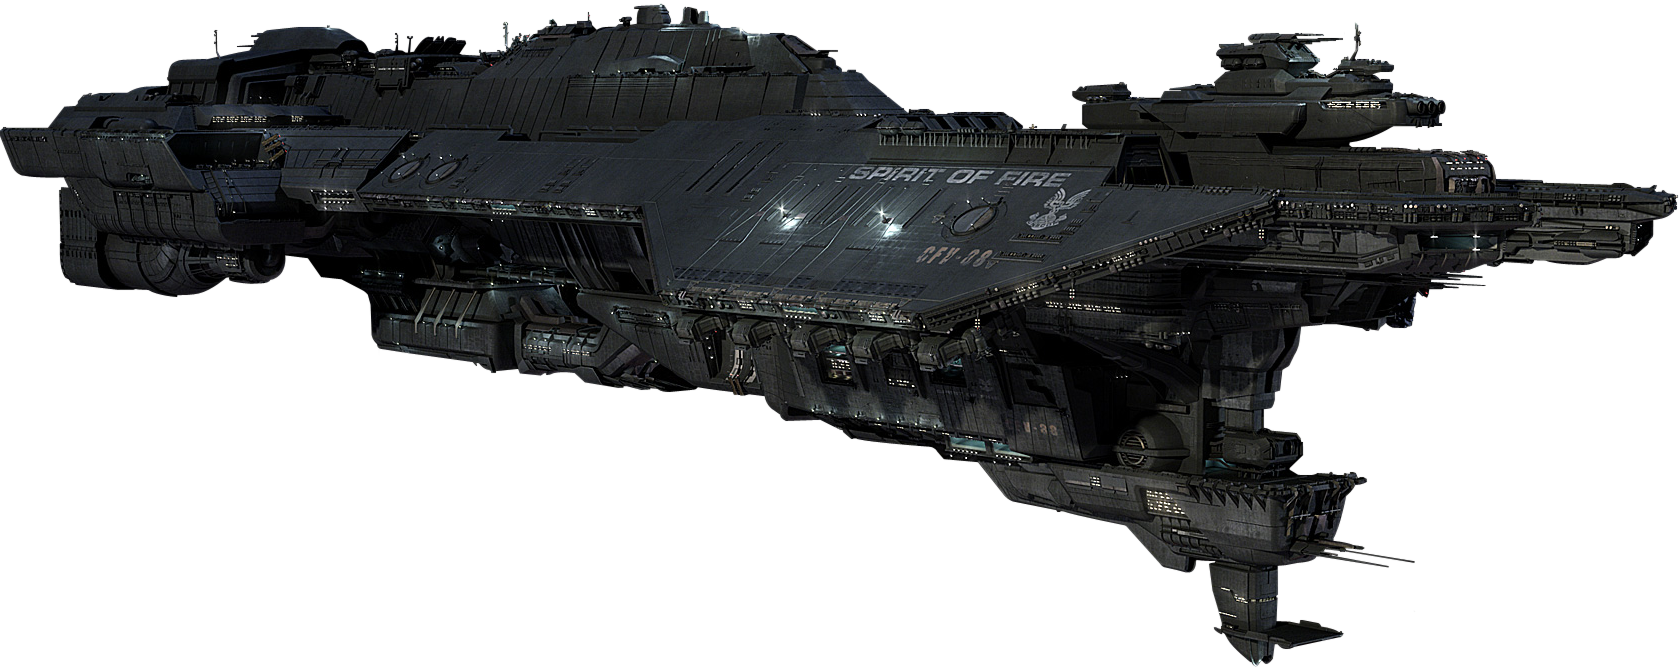 UNSC Infinity and Frigates < Like the design? | Halo Universe ...